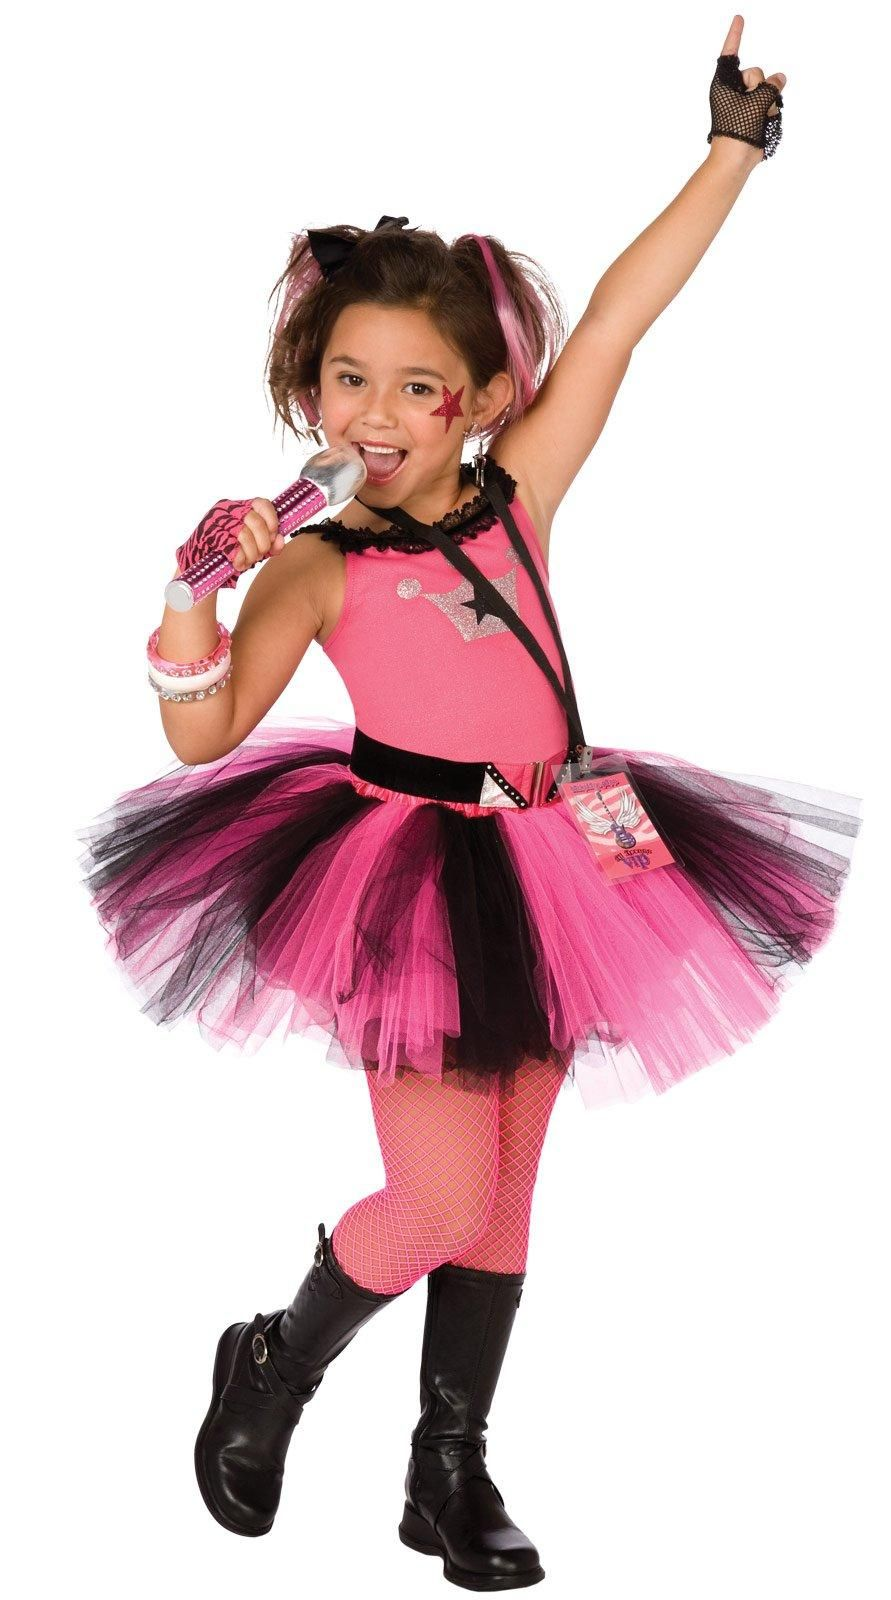 Glam Rocker Child Costume from